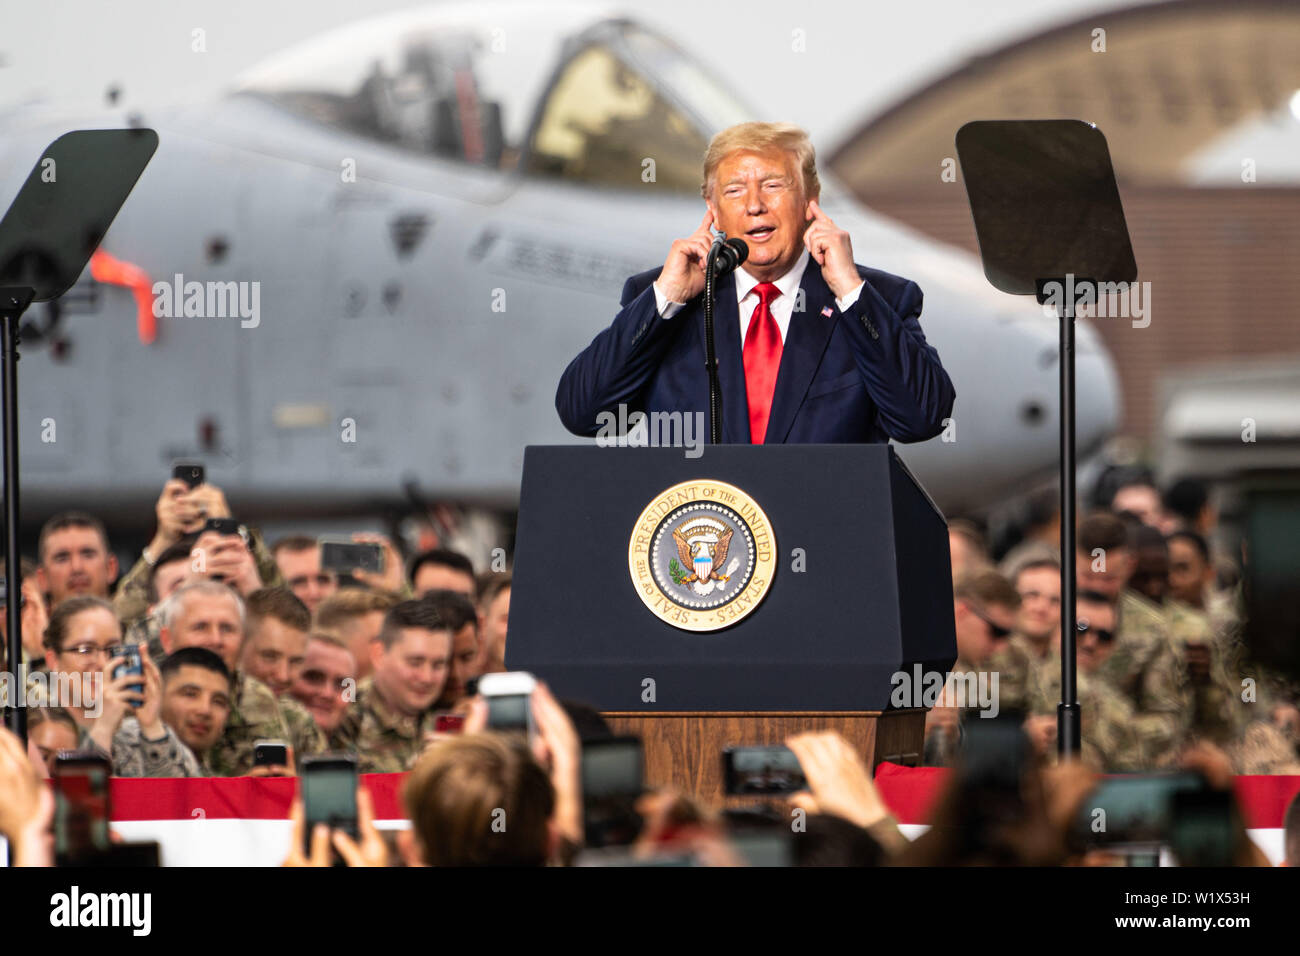 Prsident Donald J. Trump shields his ears from the noise of the crowd during an event at Osan Air Base, Republic of Korea, June 30, 2019.  Every service branch serving under U.S. Forces Korea was represented in the crowd during the presidential visit to the peninsula.  (U.S. Air Force photo by 1st Lt. Daniel de La Fé) Stock Photo